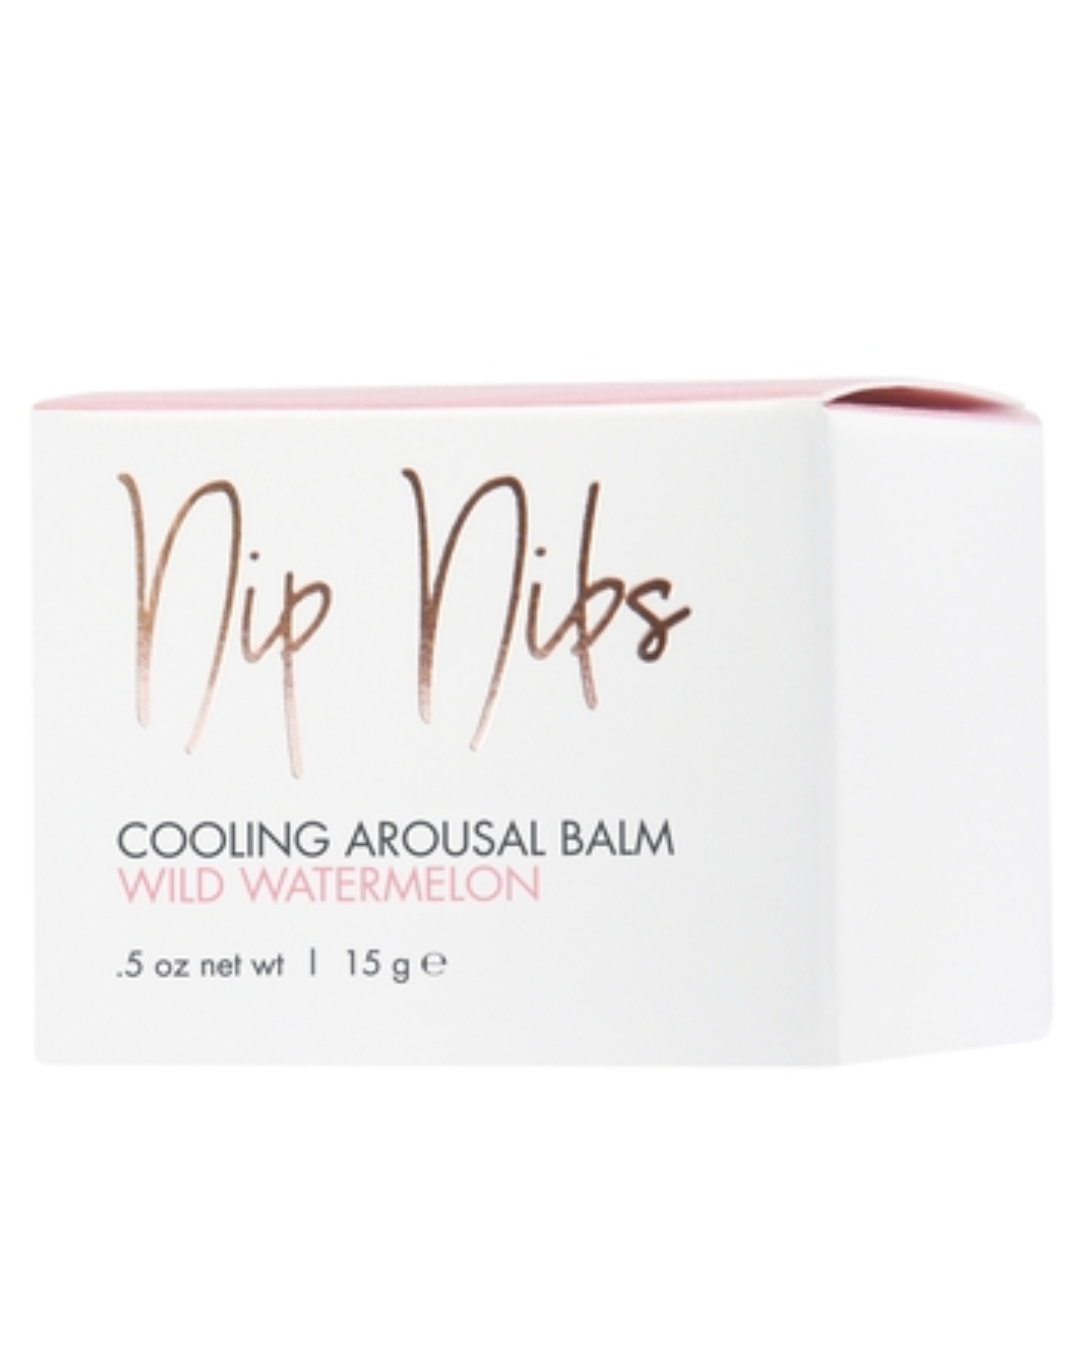 CG Nip Nibs Cooling Arousal Balm .5 oz - Wild Watermelon box